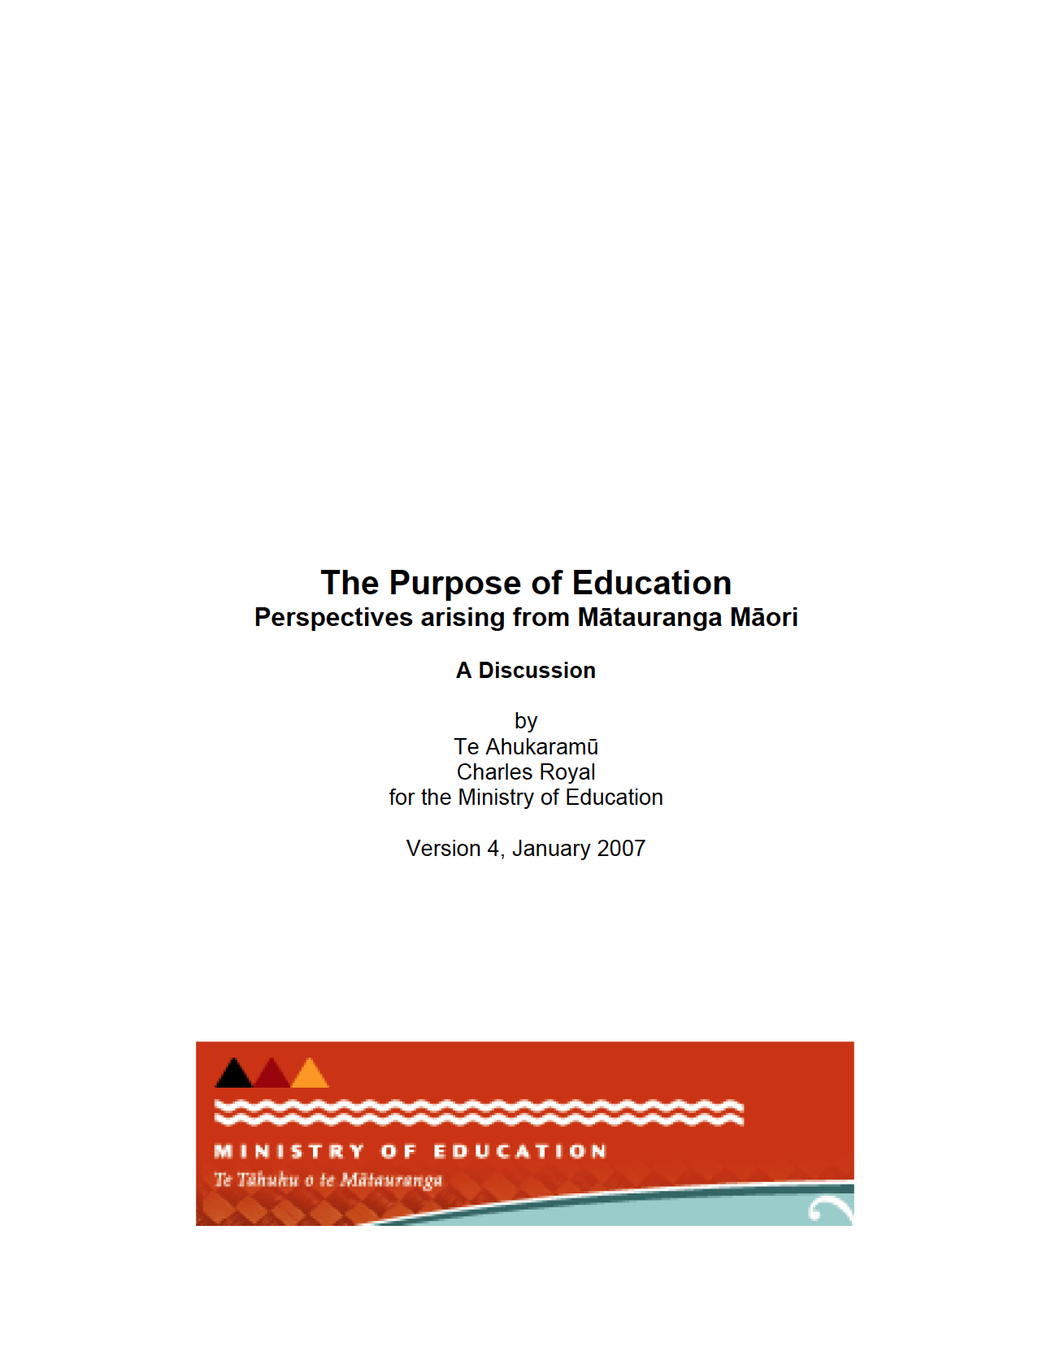 The Purpose of Education: Perspectives from Mātauranga Māori